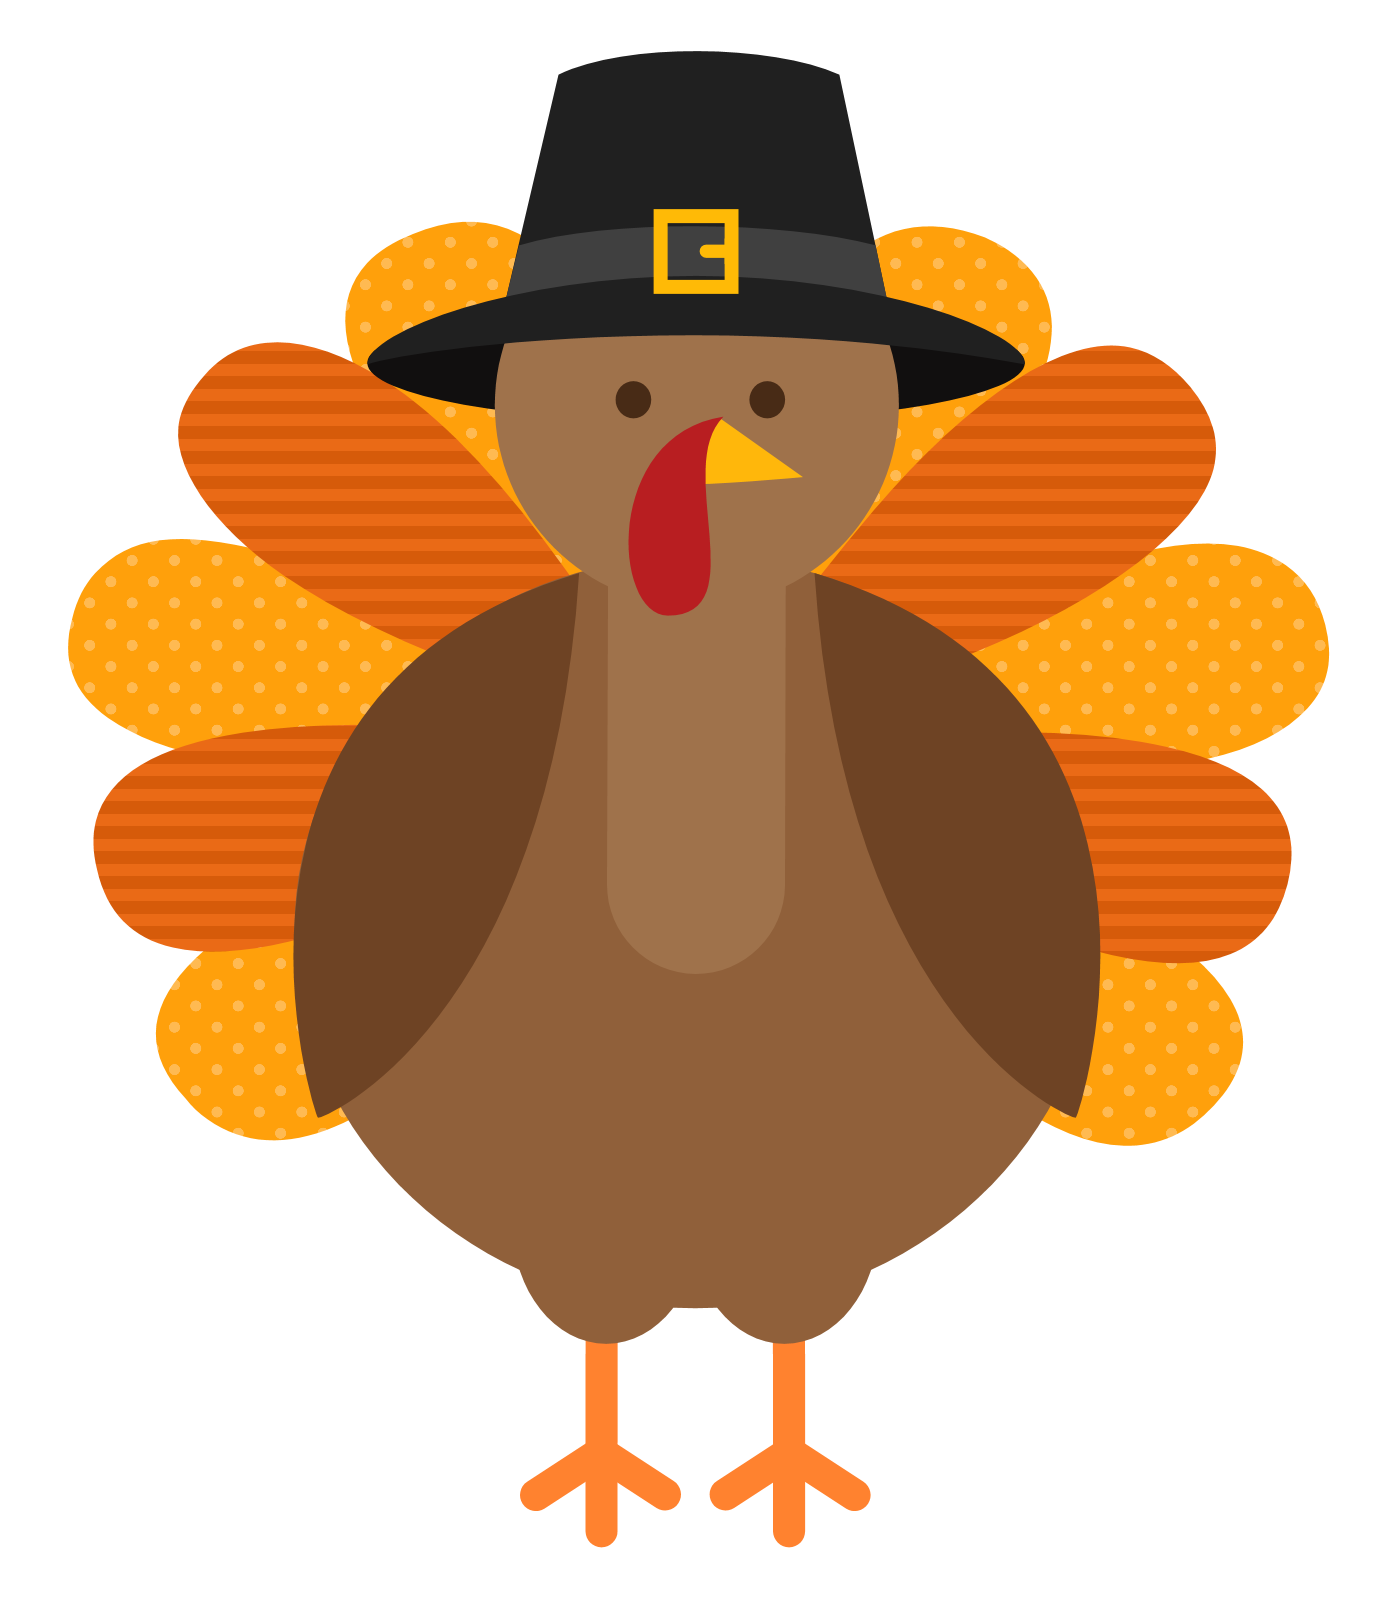 Cute Thanksgiving Turkey Clip Art A Very-Cute Thanksgiving Turkey Clip Art A Very Happy Thanksgiving-2